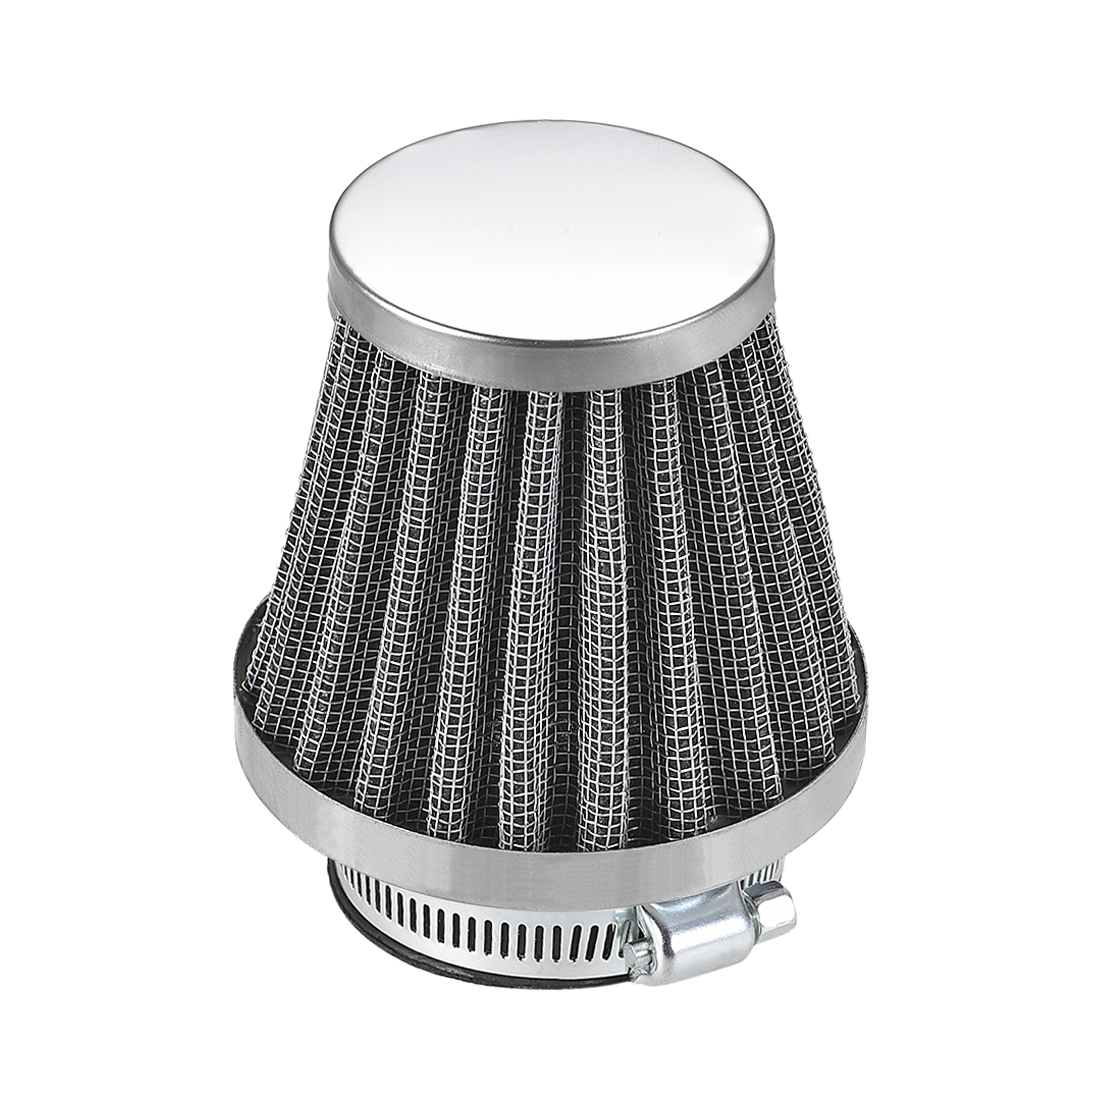 44mm Air Filter for 50cc 110cc 125cc 150cc 200cc gy6 Moped Scooter Motorcycle